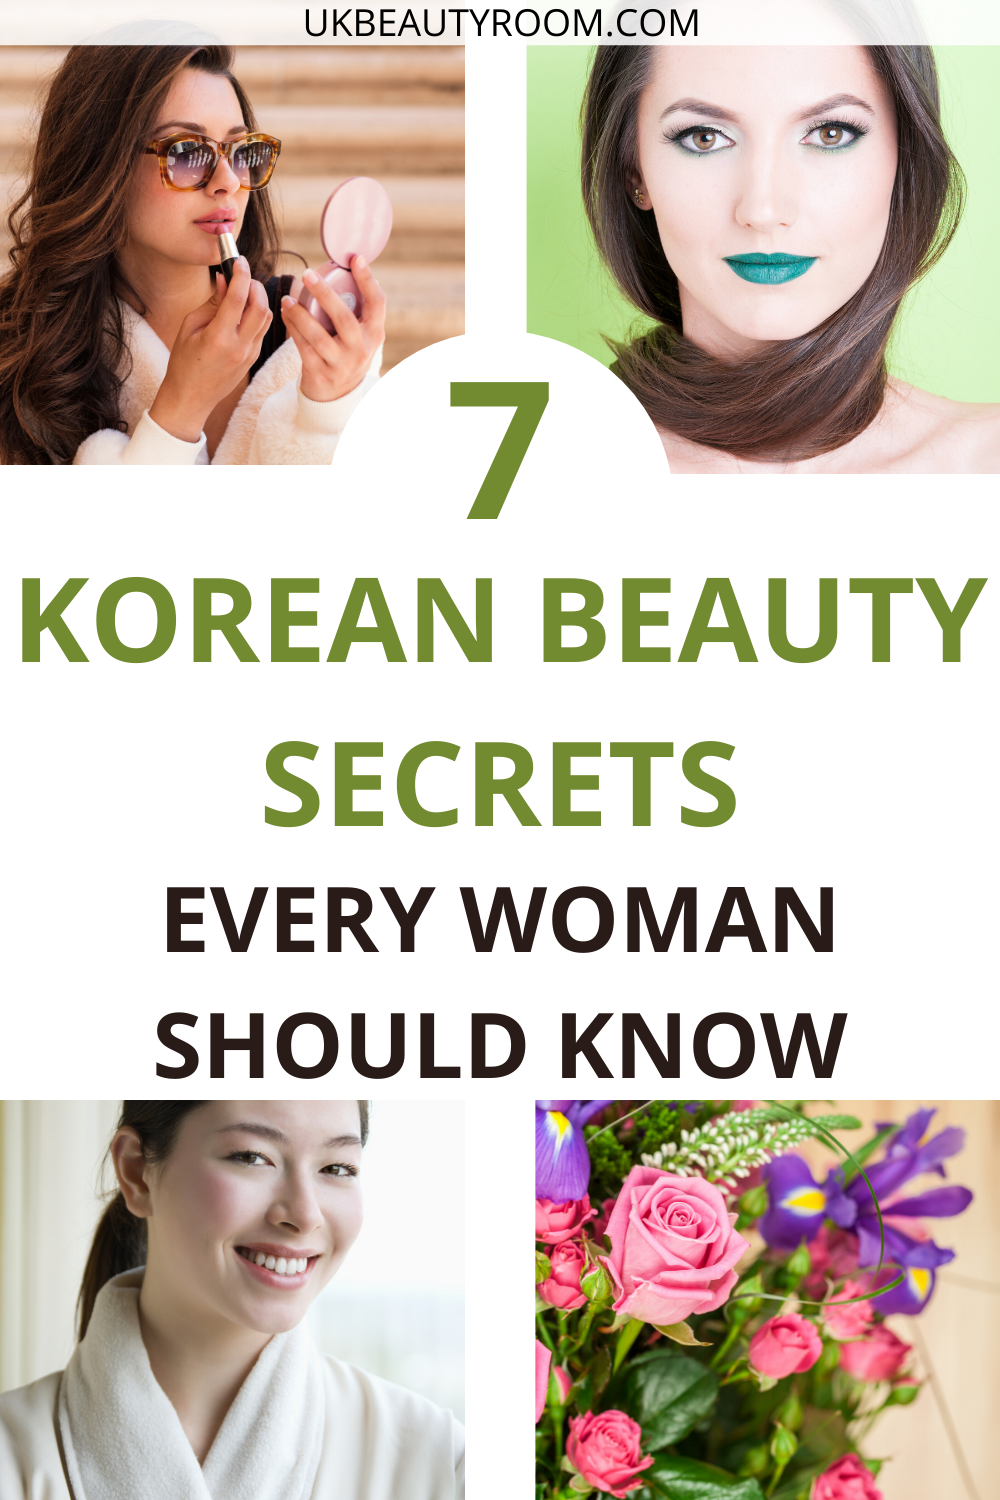 Korean Skin Care Secrets And Tips Informations About Products And Routine As Well As Details On In 2020 Korean Beauty Secrets Korean Skin Care Secrets Beauty Secrets